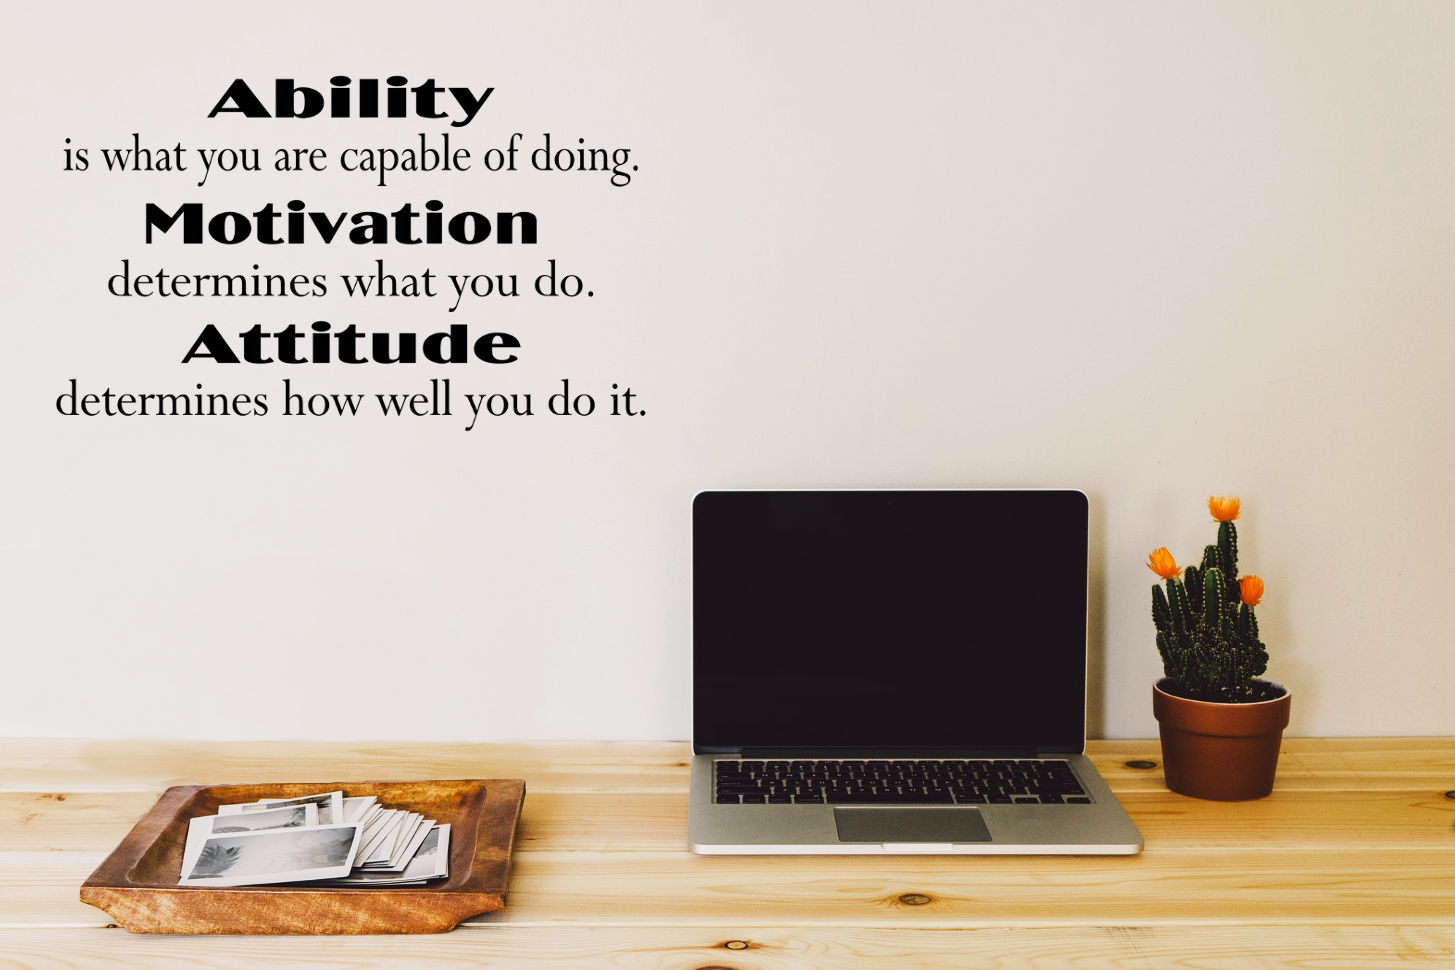 Ability Motivation Atude